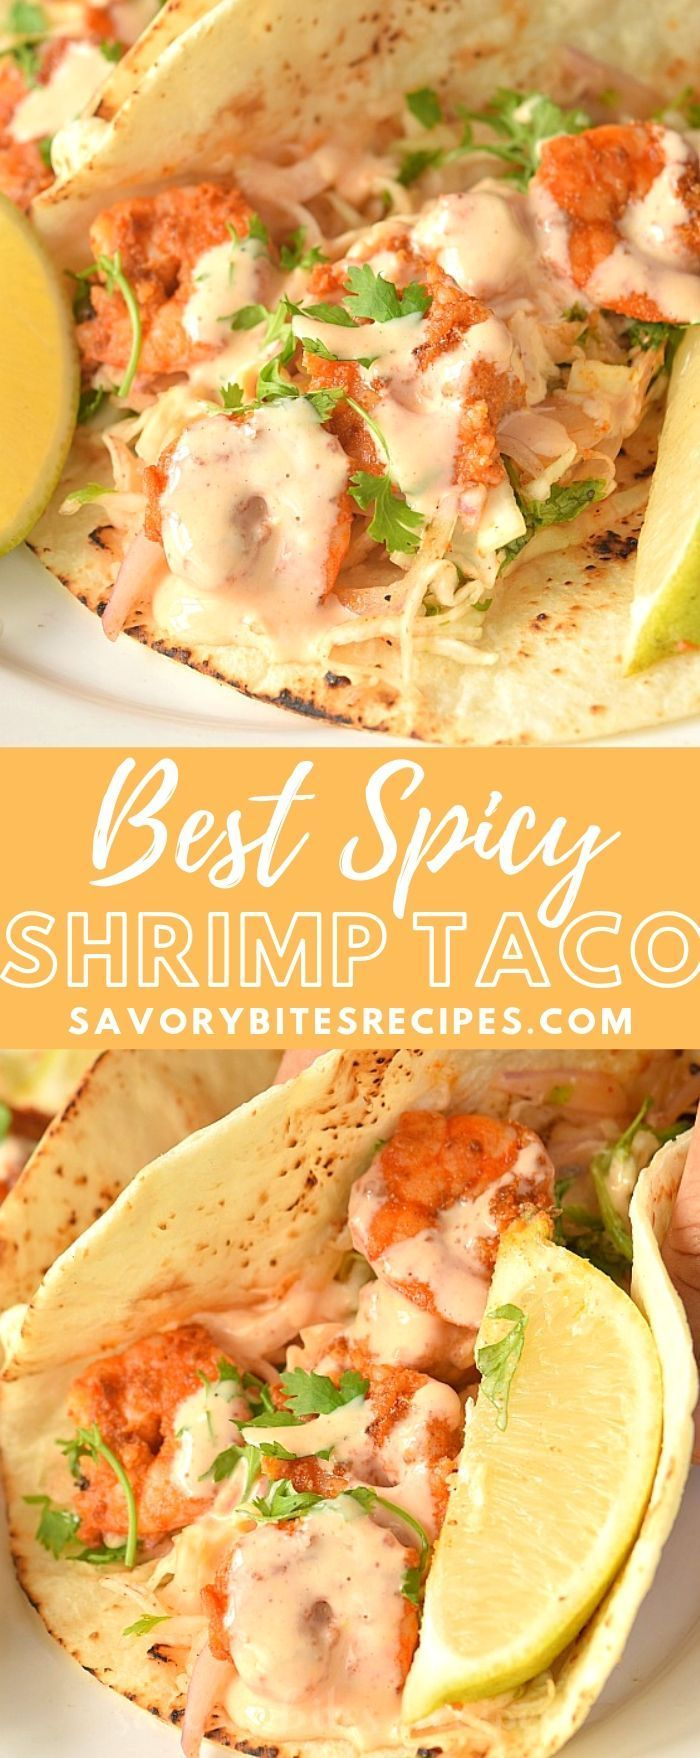 Spicy Shrimp Tacos with Cabbage Slaw -  #cabbage #shrimp #Slaw #spicy #tacos #shrimptacorecipes